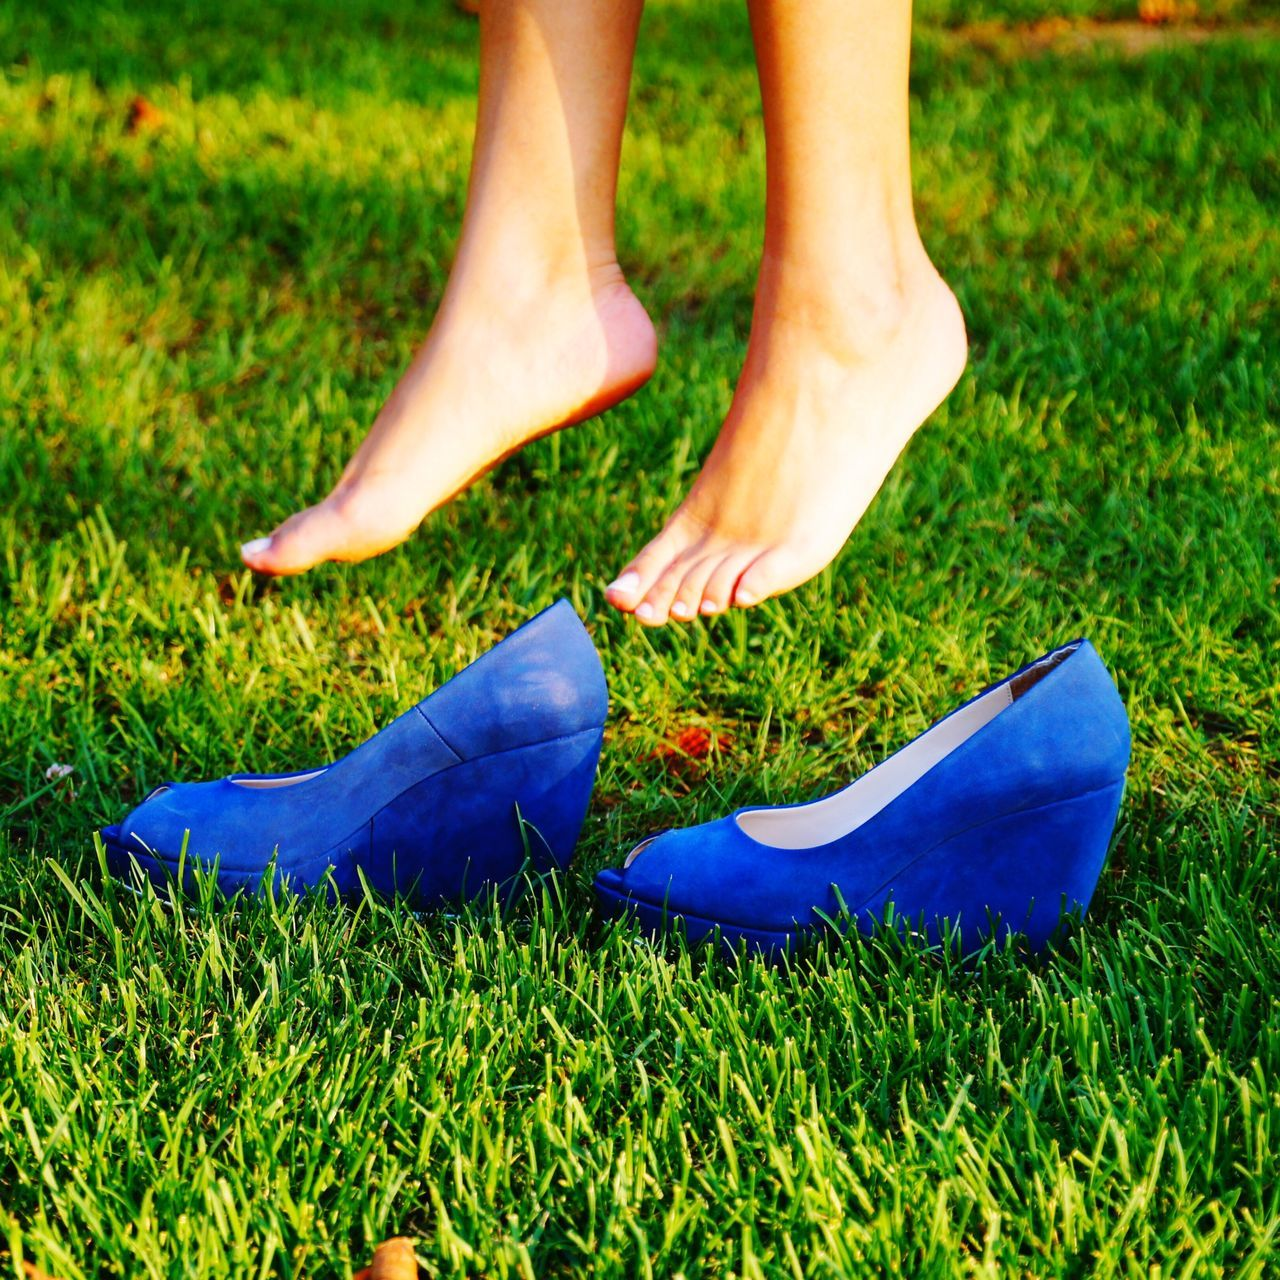 Low Section Grass Human Leg One Person Shoe Day Human Body Part Green Color Outdoors One Man Only Adult Adults Only People Nature Close-up Cinderella